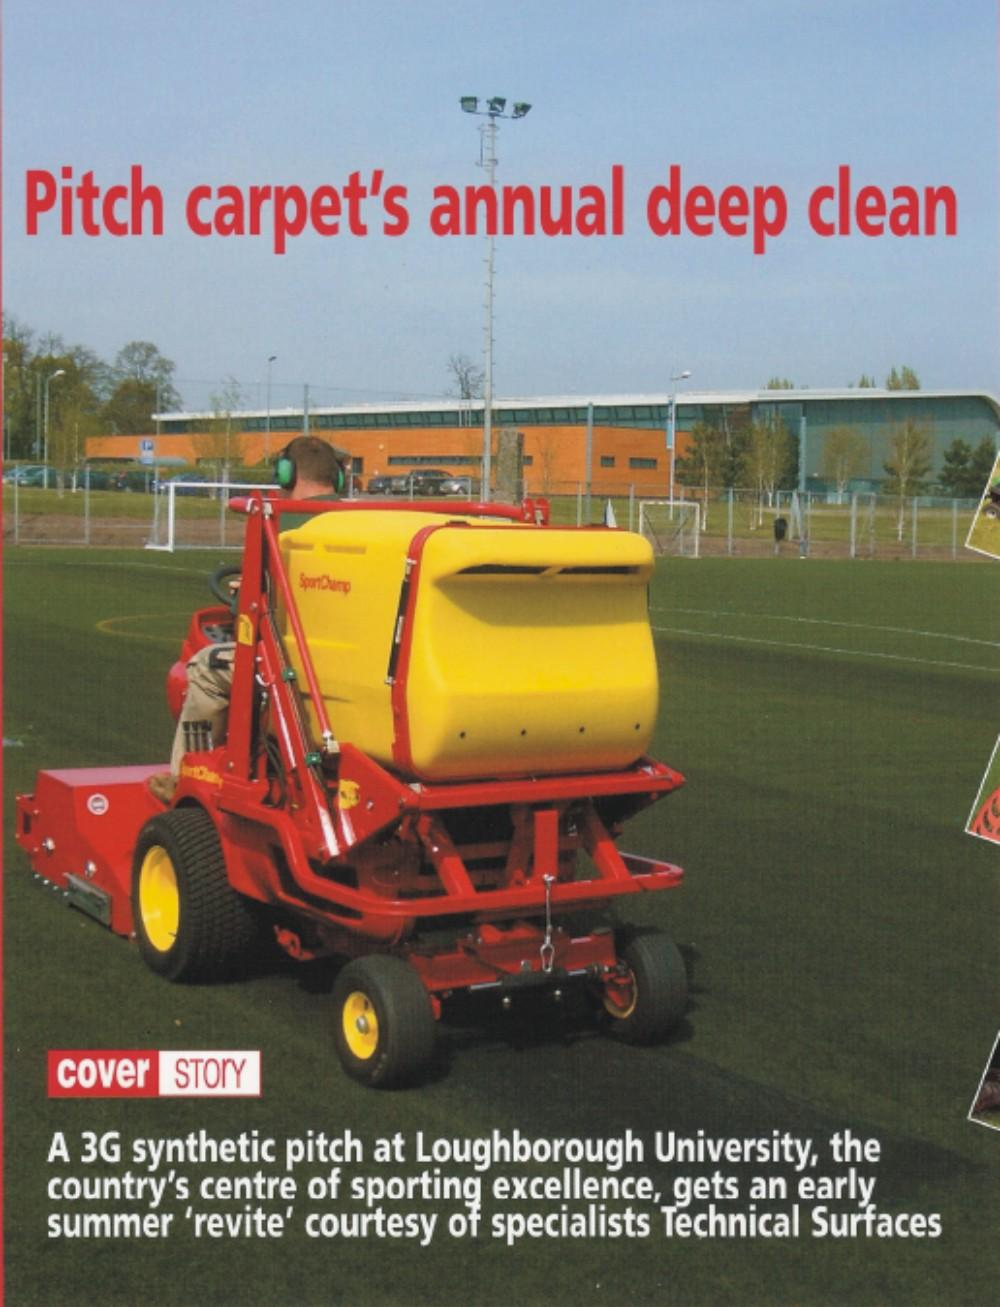 Synthetic Pitch Carpet's annual deep clean